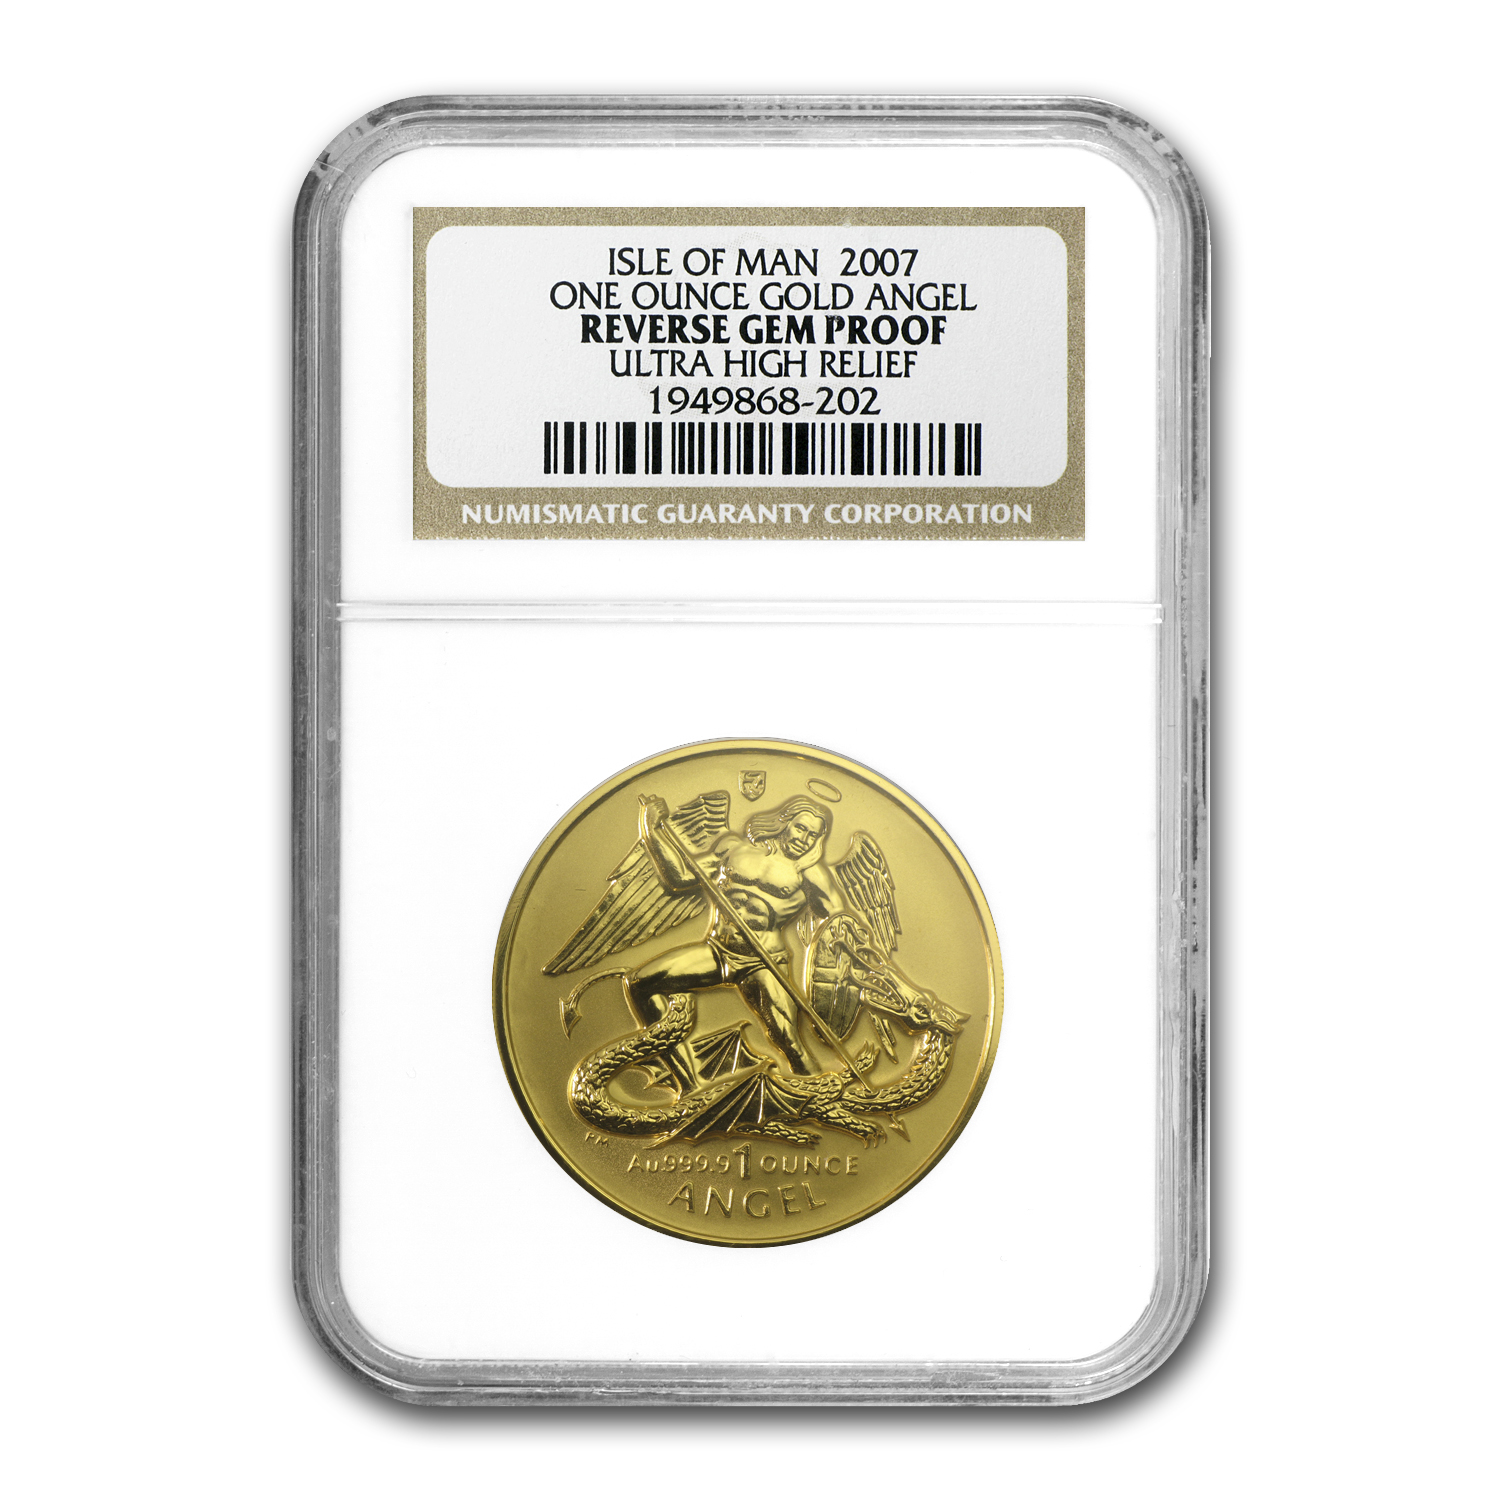 Isle of Man 2007 1 Oz Gold Angel NGC Gem Reverse Proof UHR